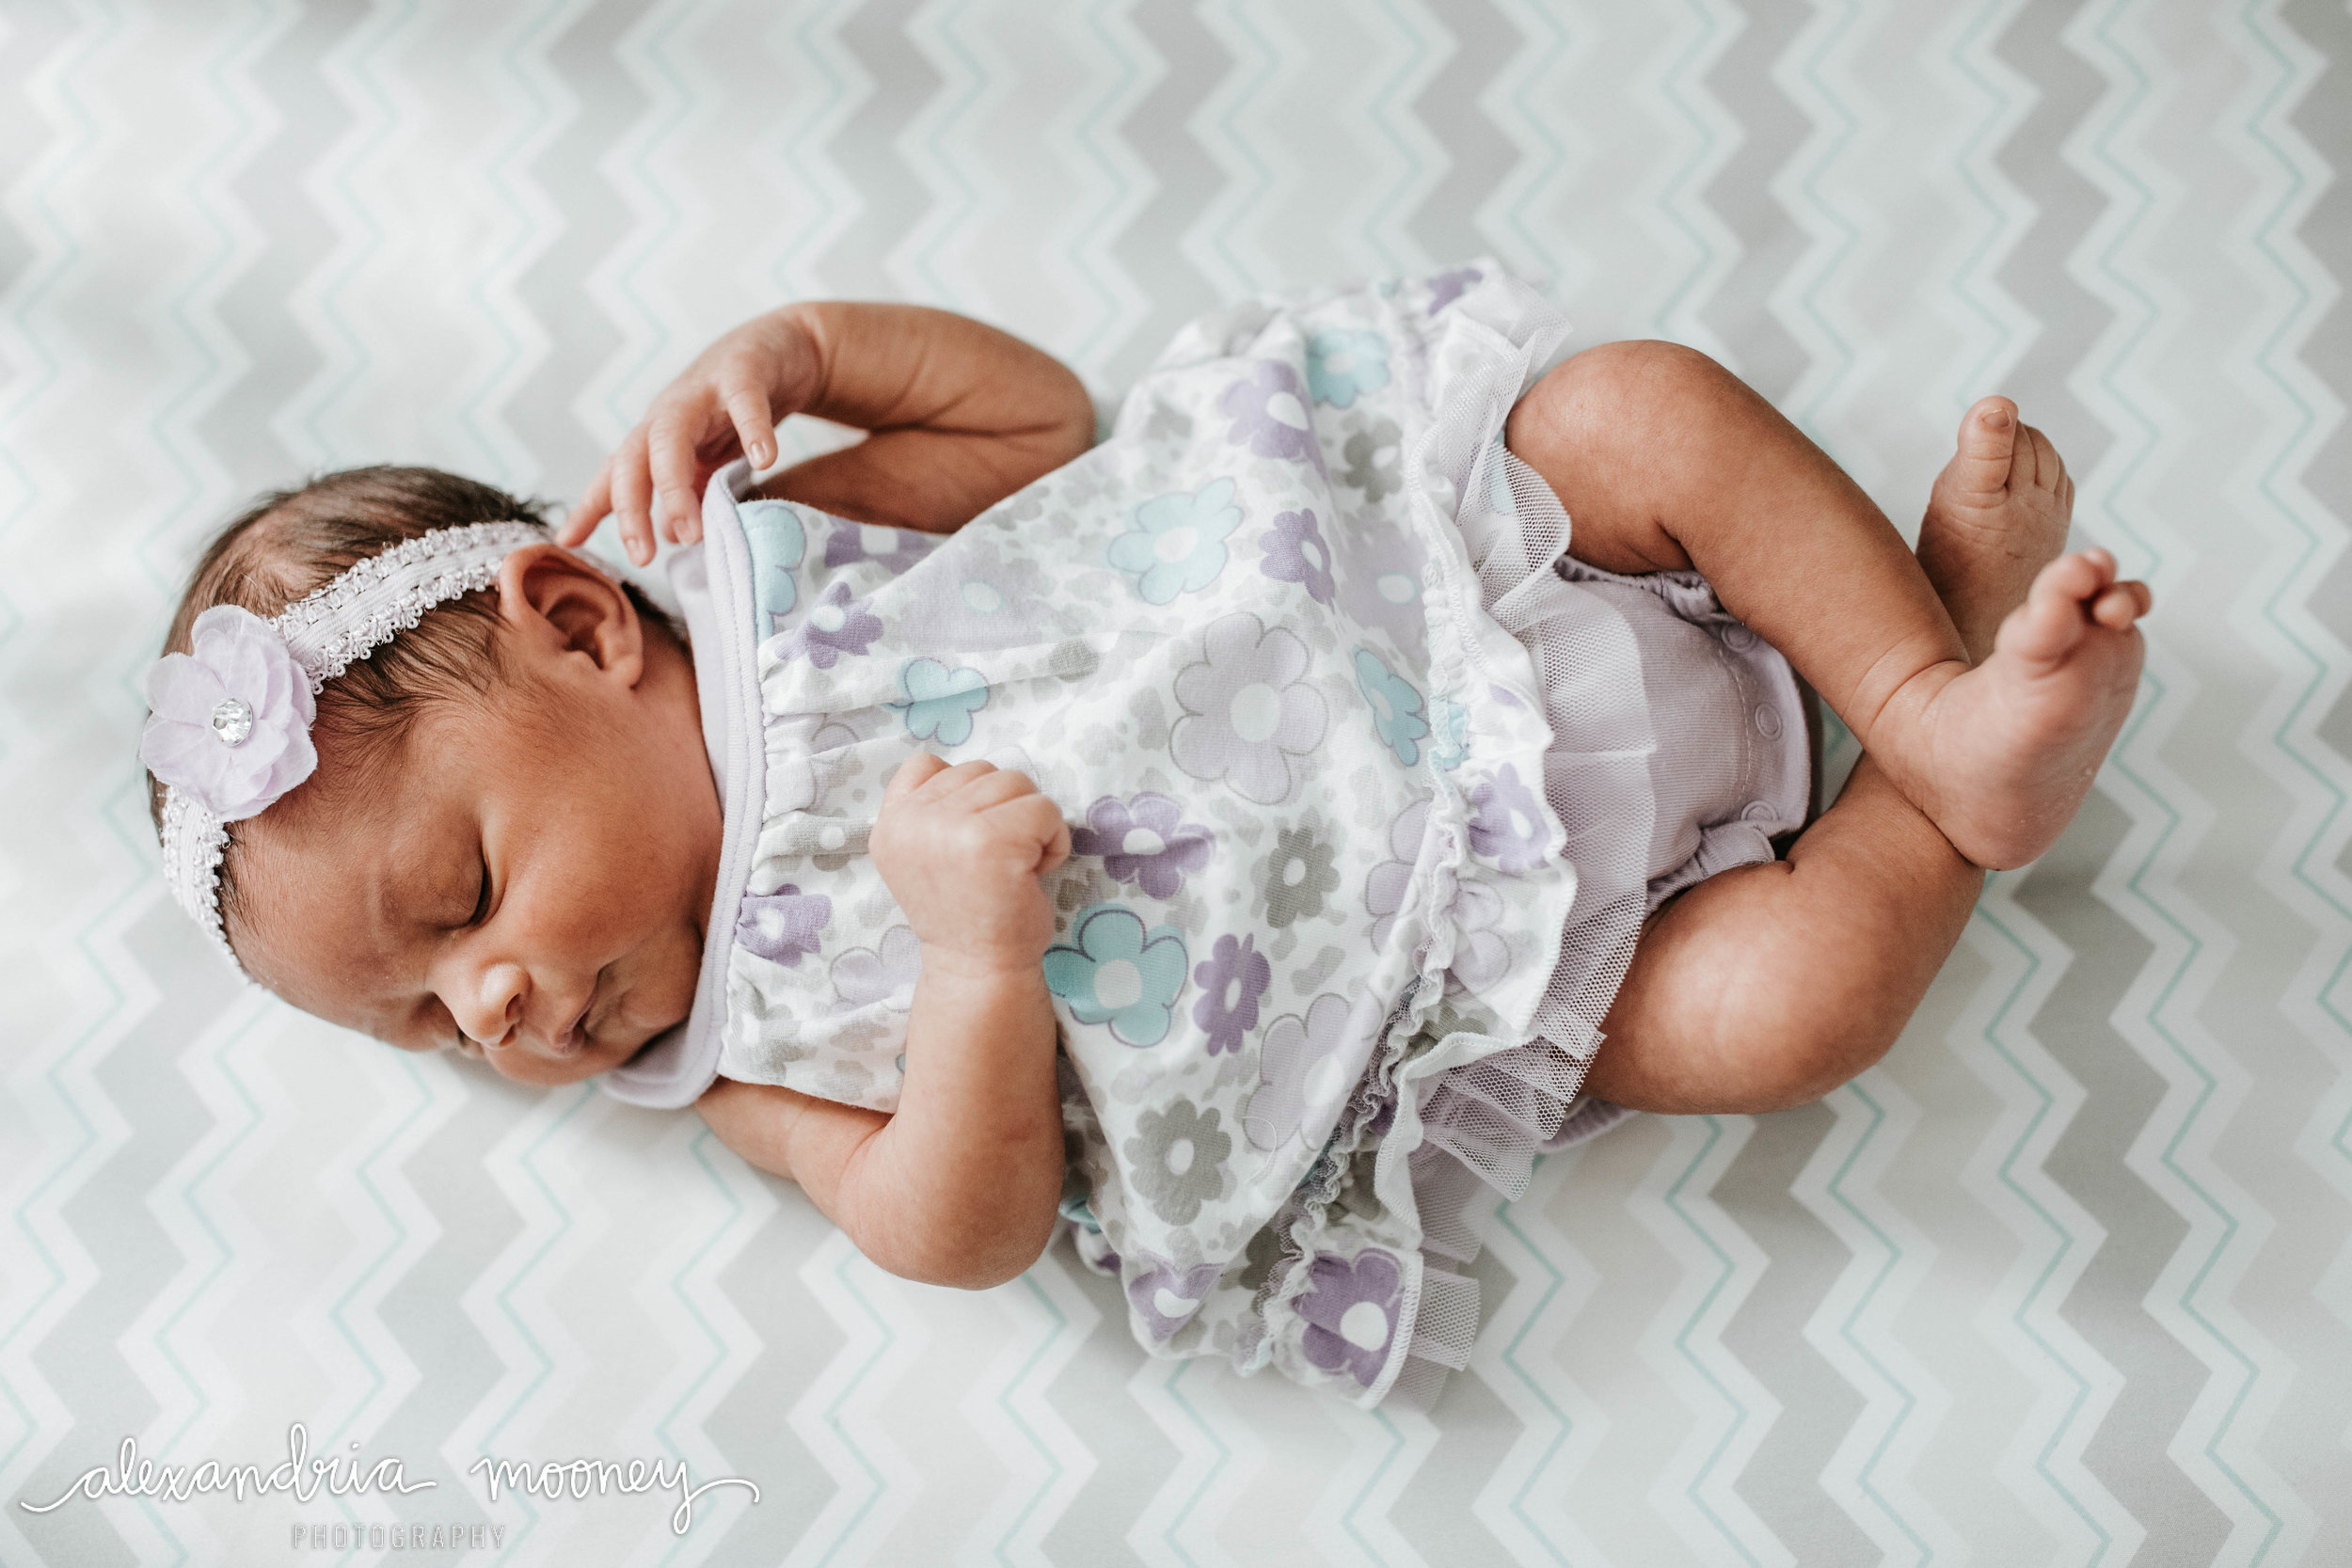 Callie_Newborn_WATERMARKED-28.jpg